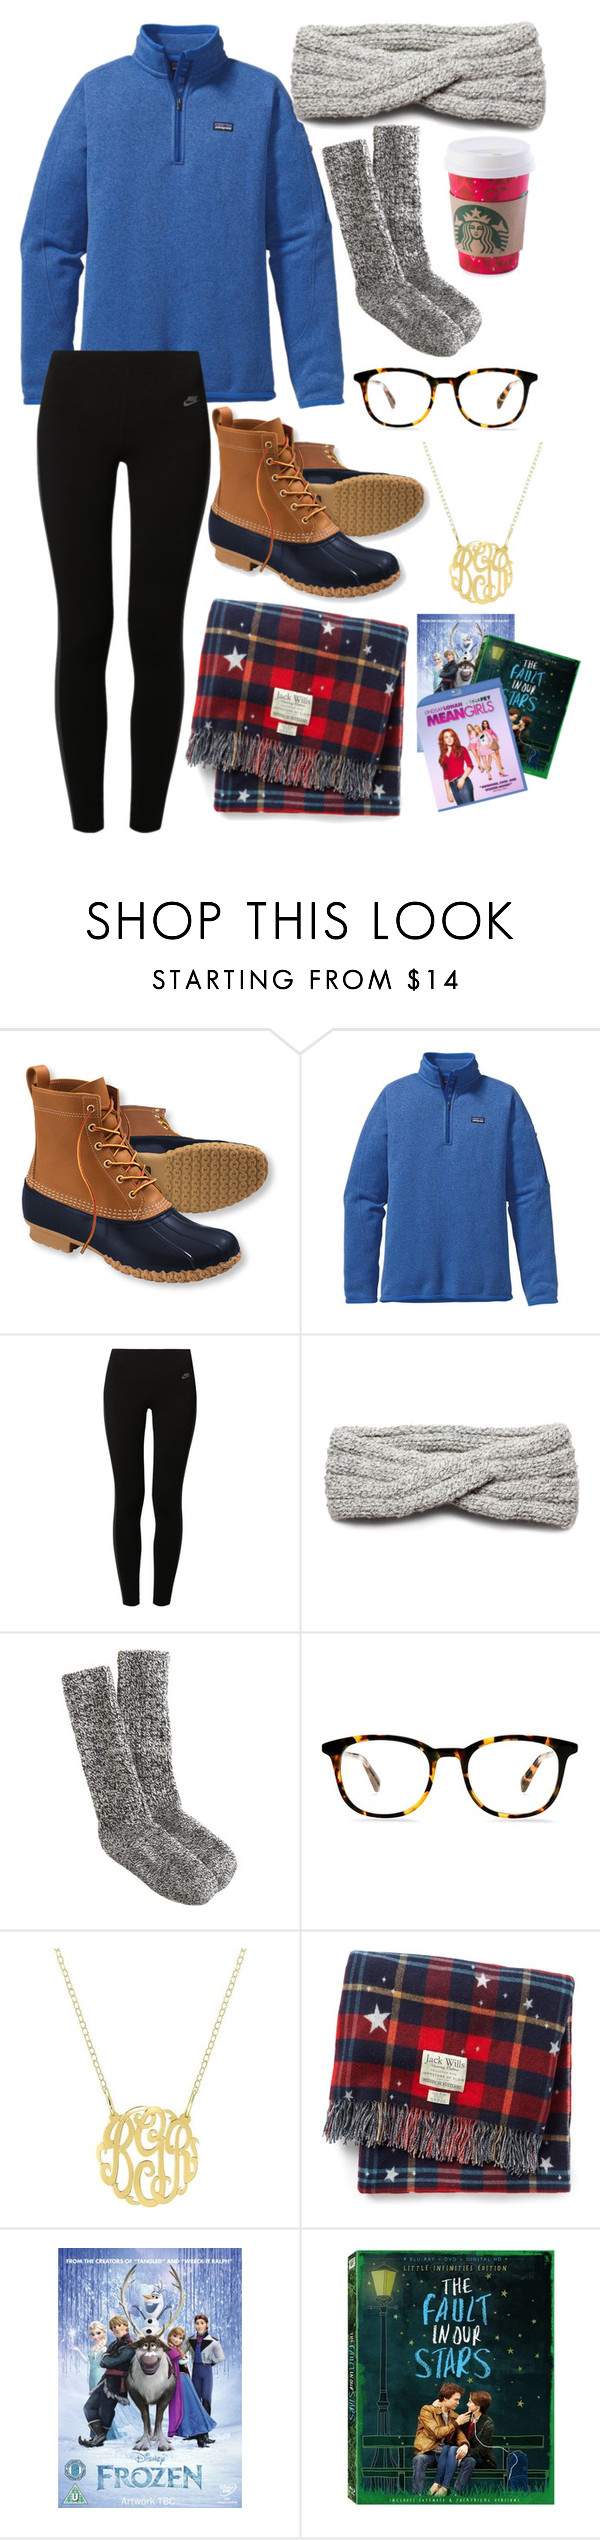 """First Snow Day of the Year!"" by lalalanie ❤ liked on Polyvore featuring L.L.Bean, Patagonia, NIKE, NIC+ZOE, J.Crew, Jack Wills and Disney"